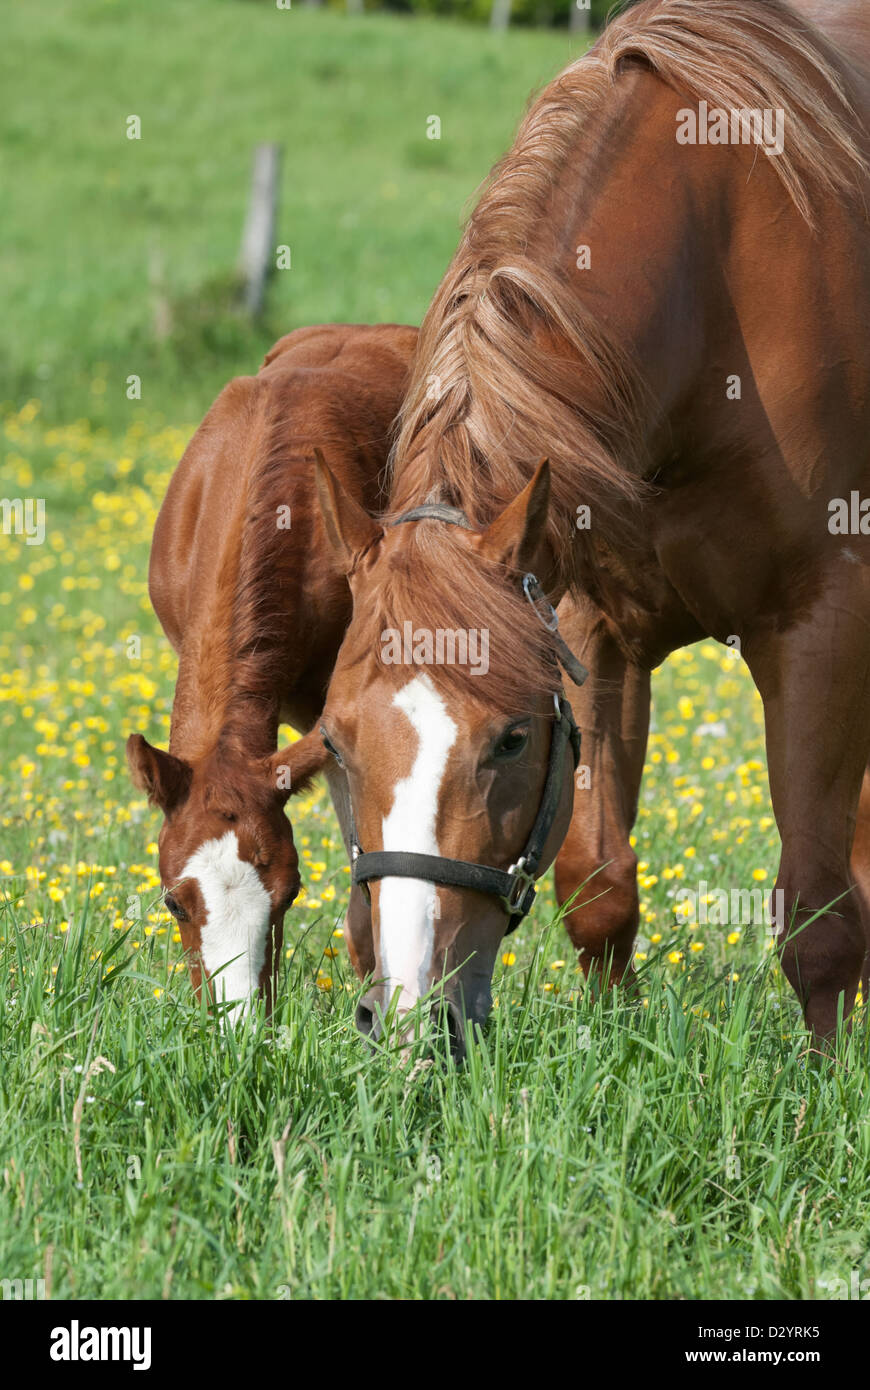 Horses grazing in spring buttercup field, a mare and her young foal, purebred Quarter horses. - Stock Image